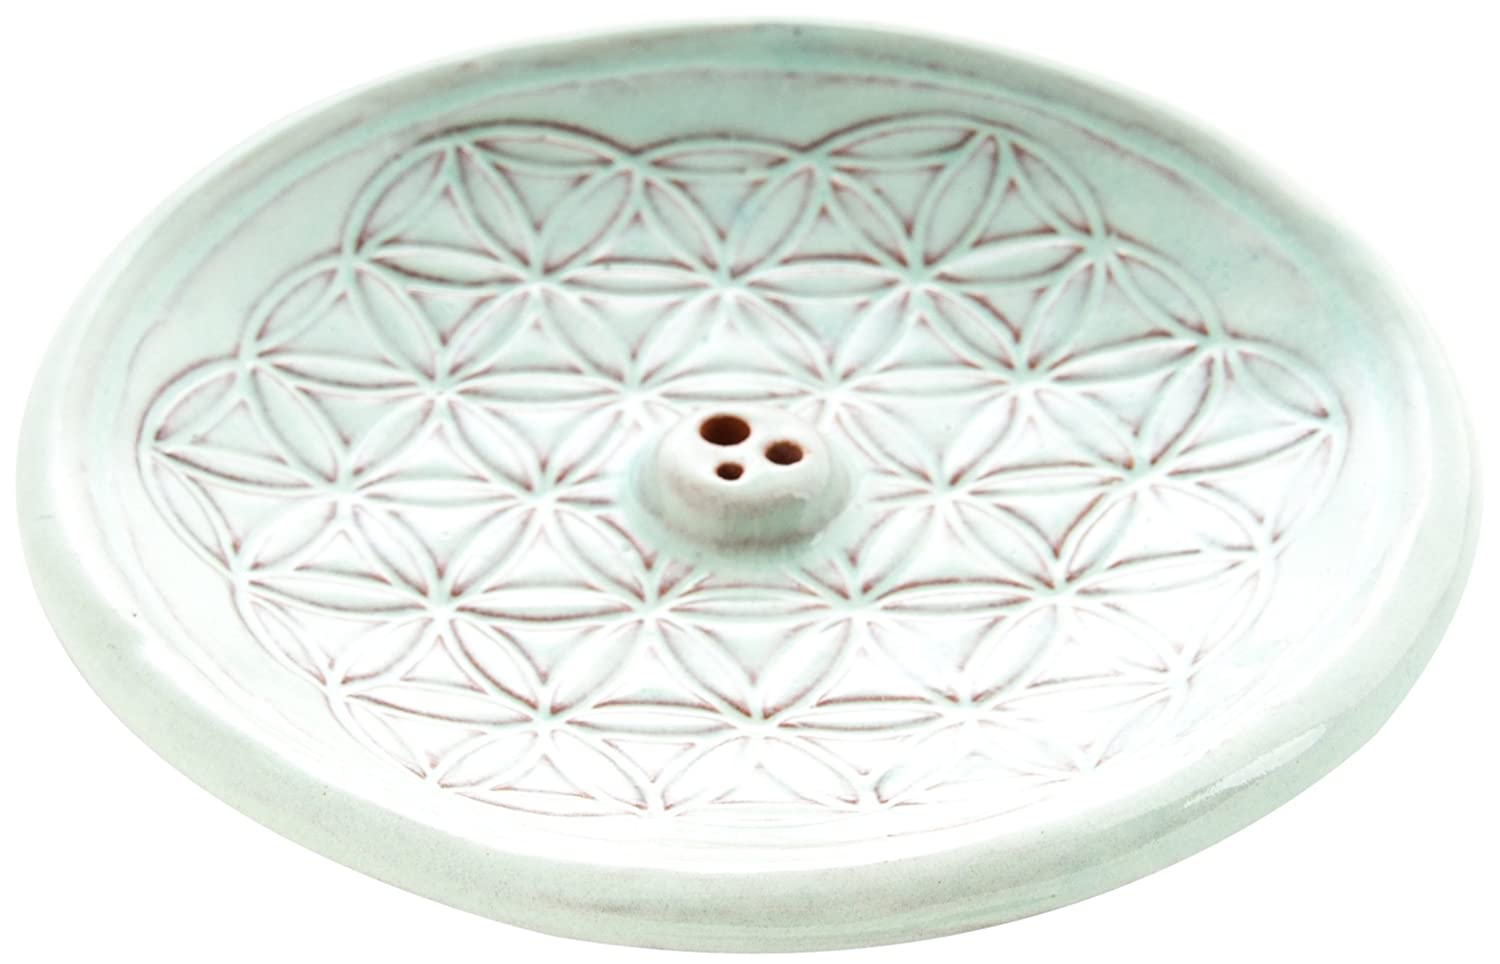 Berk - Inner Worlds Flower of Life Ceramic Incense Holder, Blue KH-560-BL